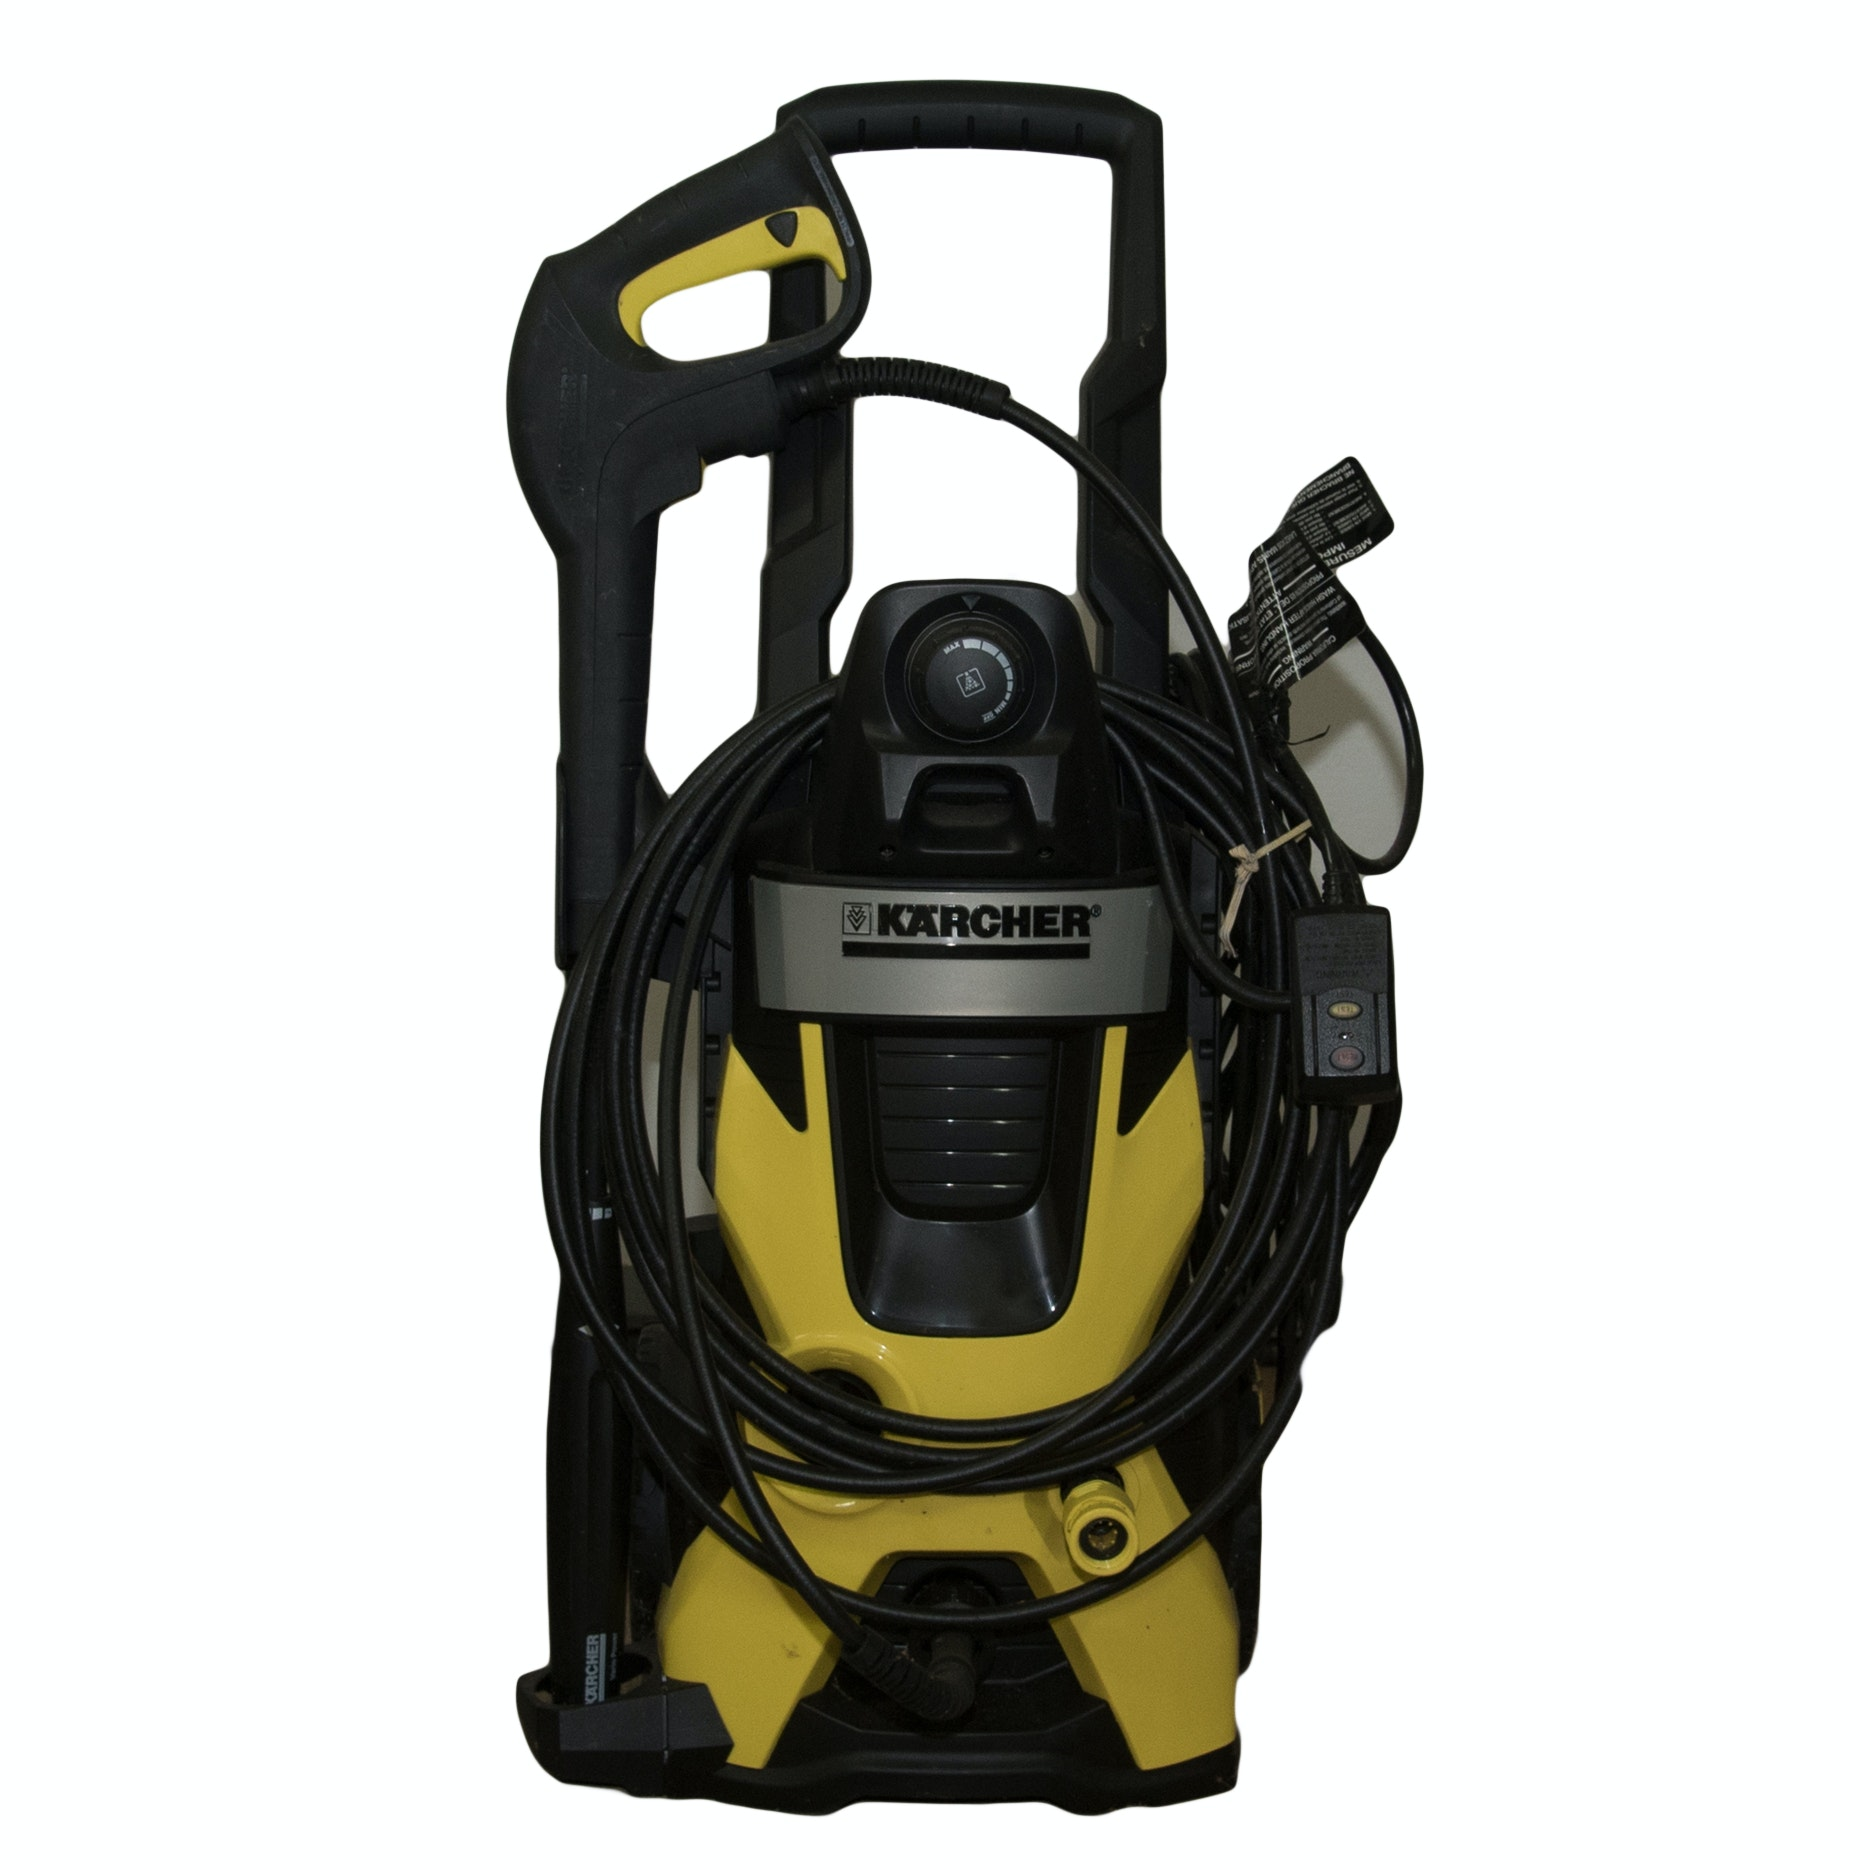 Karcher Electric High Pressure Washer